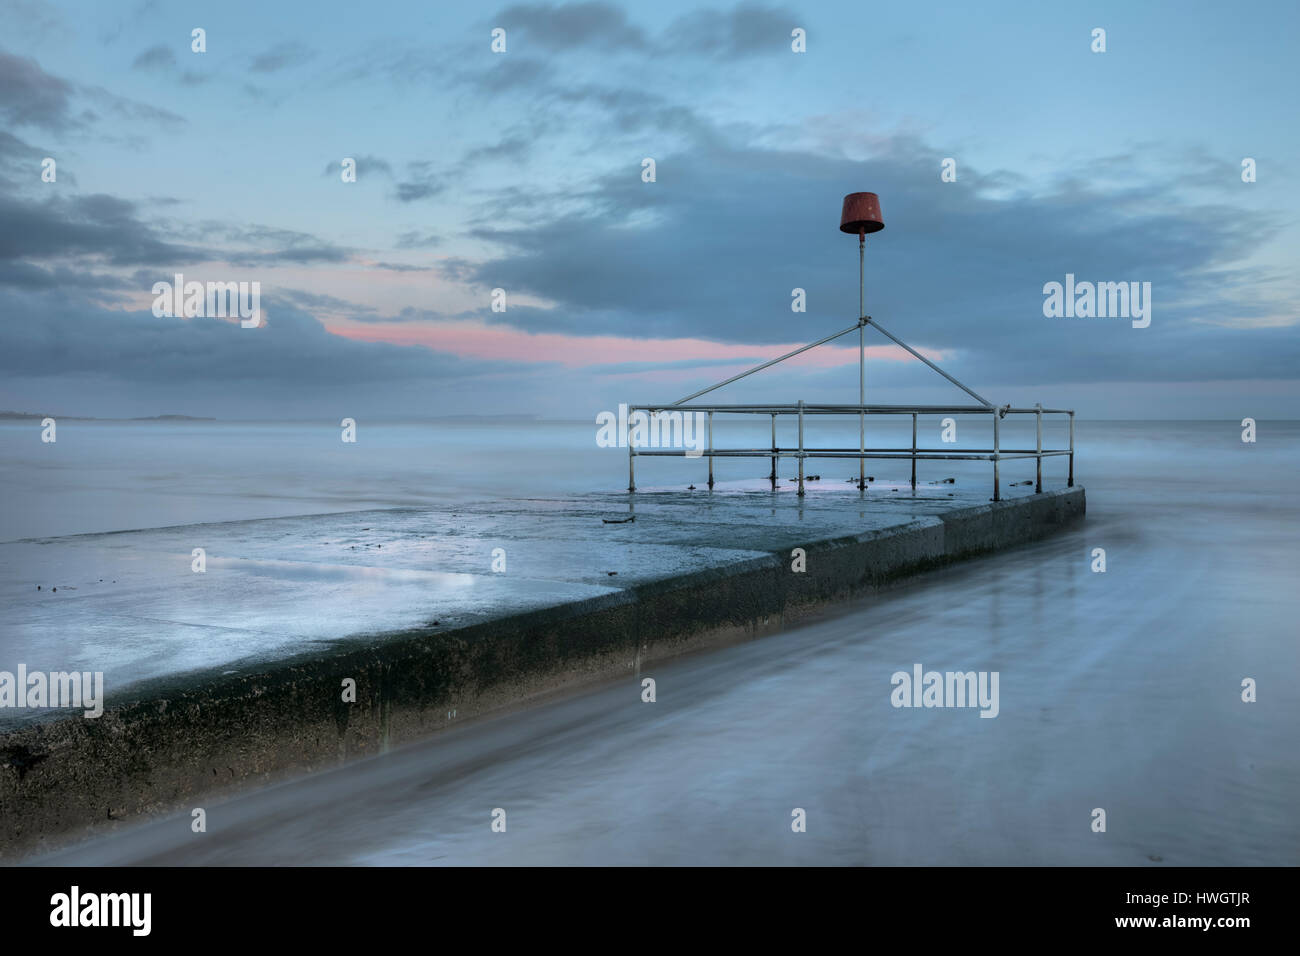 Wellenbrecher, Bournemouth, Dorset, England, UK Stockbild